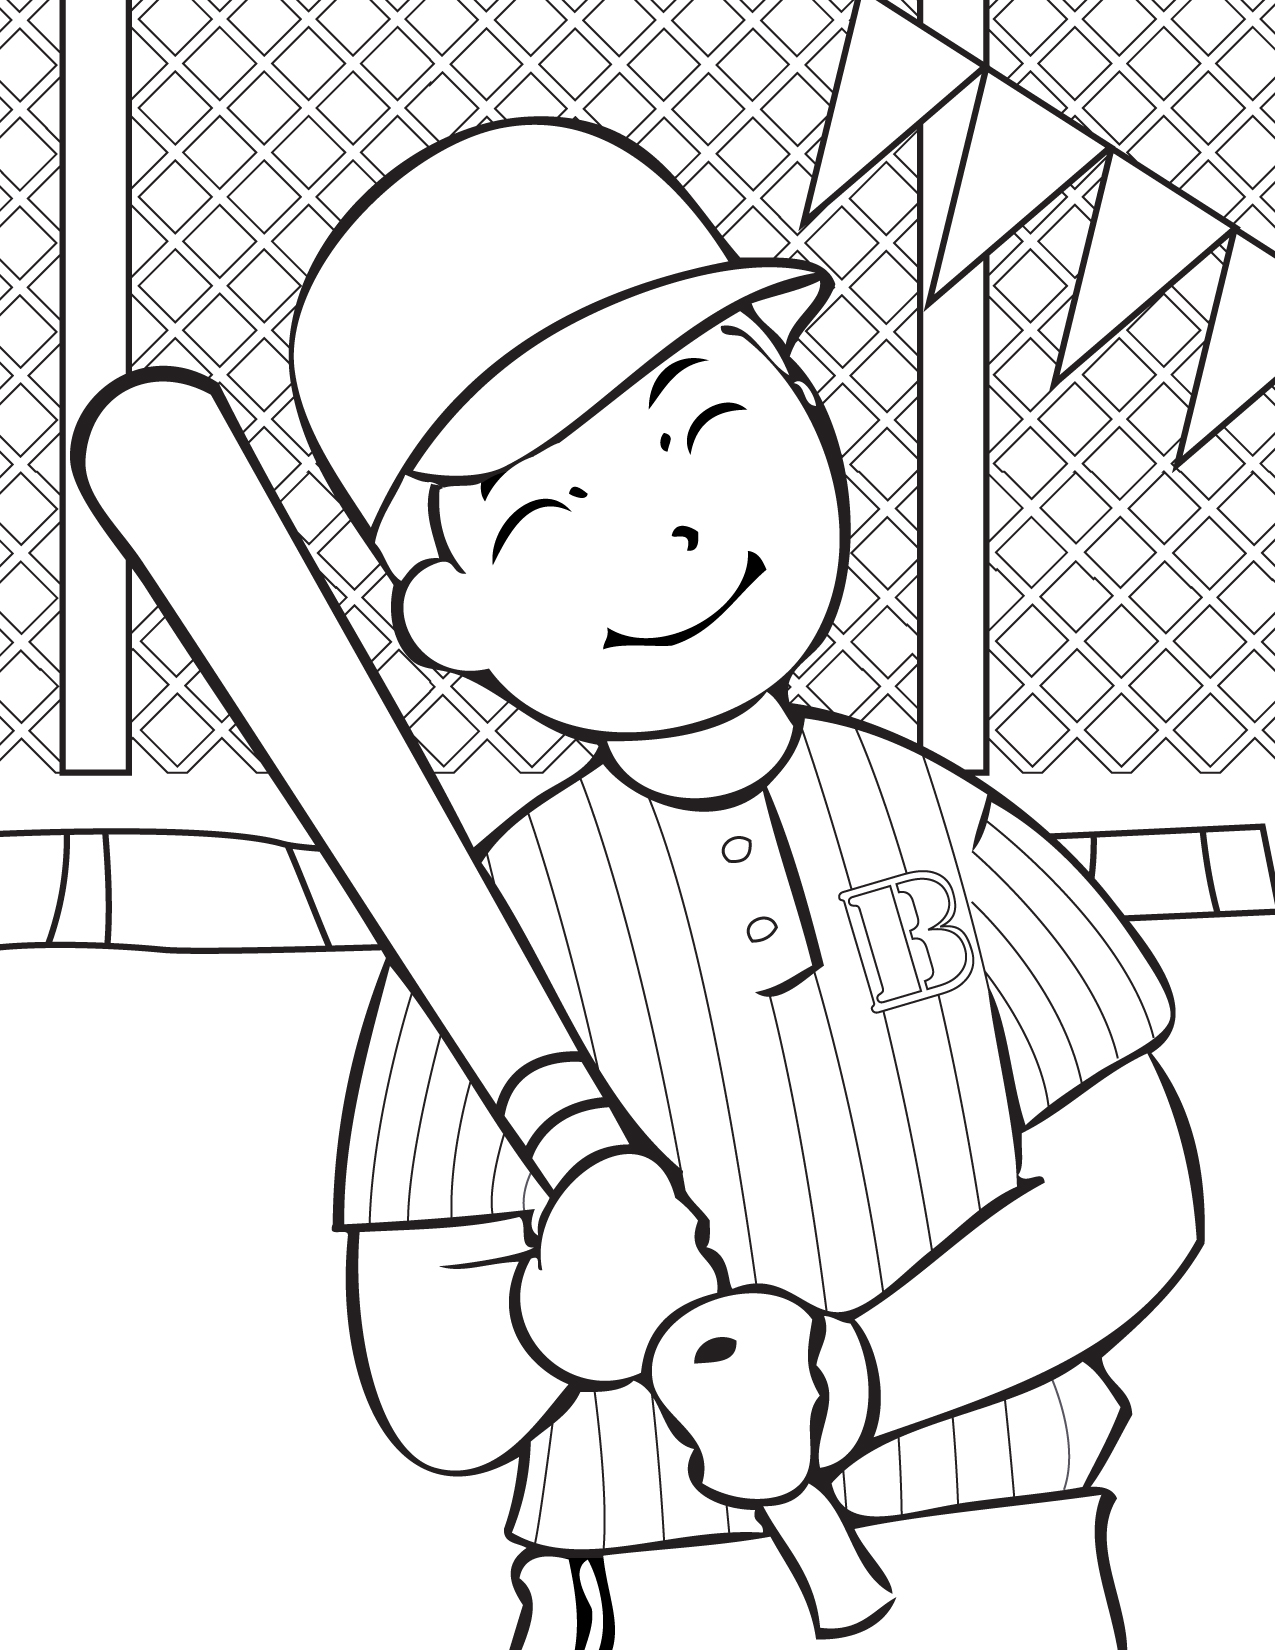 Free Printable Baseball Coloring